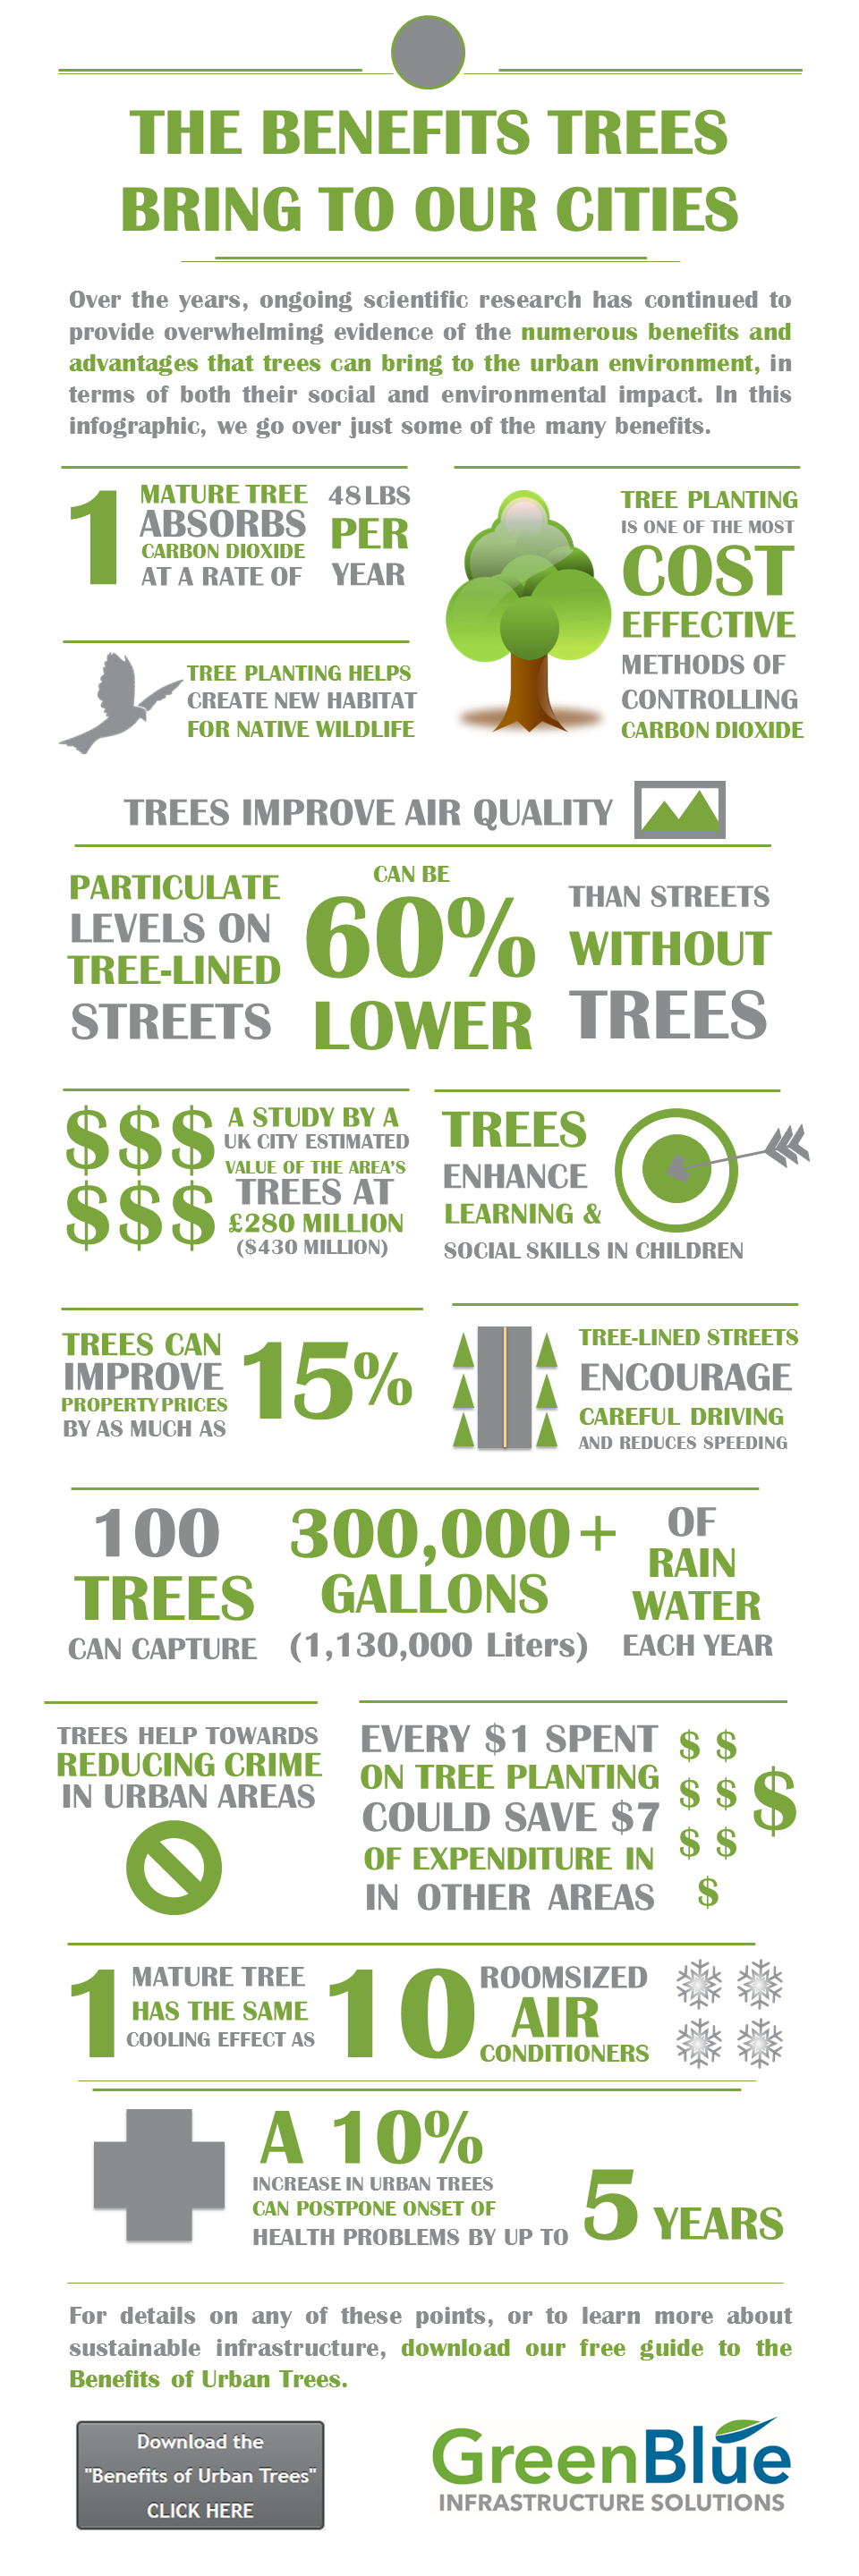 Benefits Trees Bring to Cities - Infographic